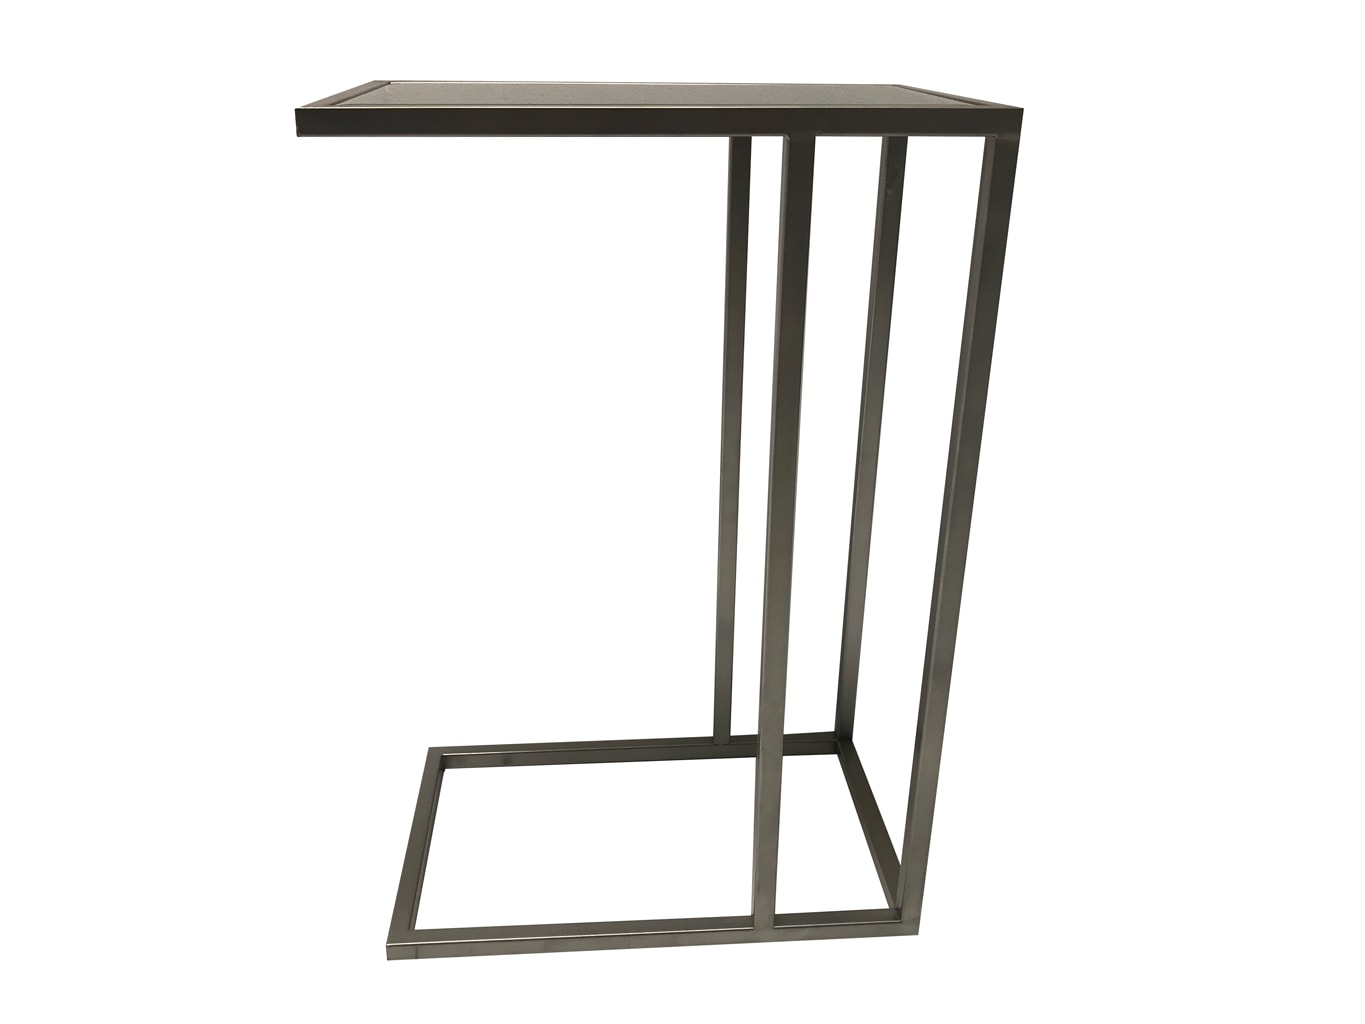 Sofa Mirrored Side Table, metal and mirror, silver finish